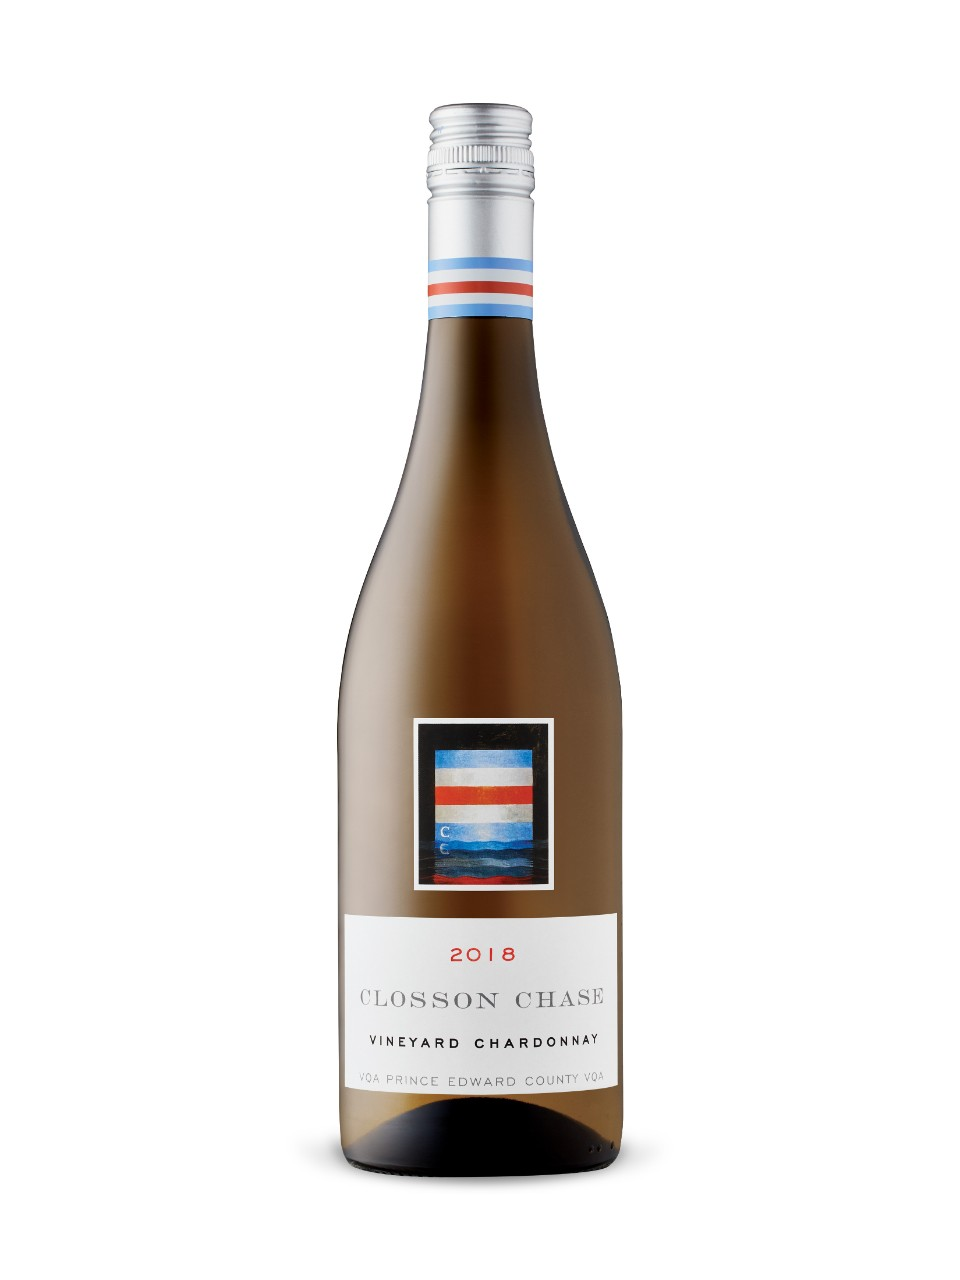 Closson Chase Vineyard Chardonnay 2016